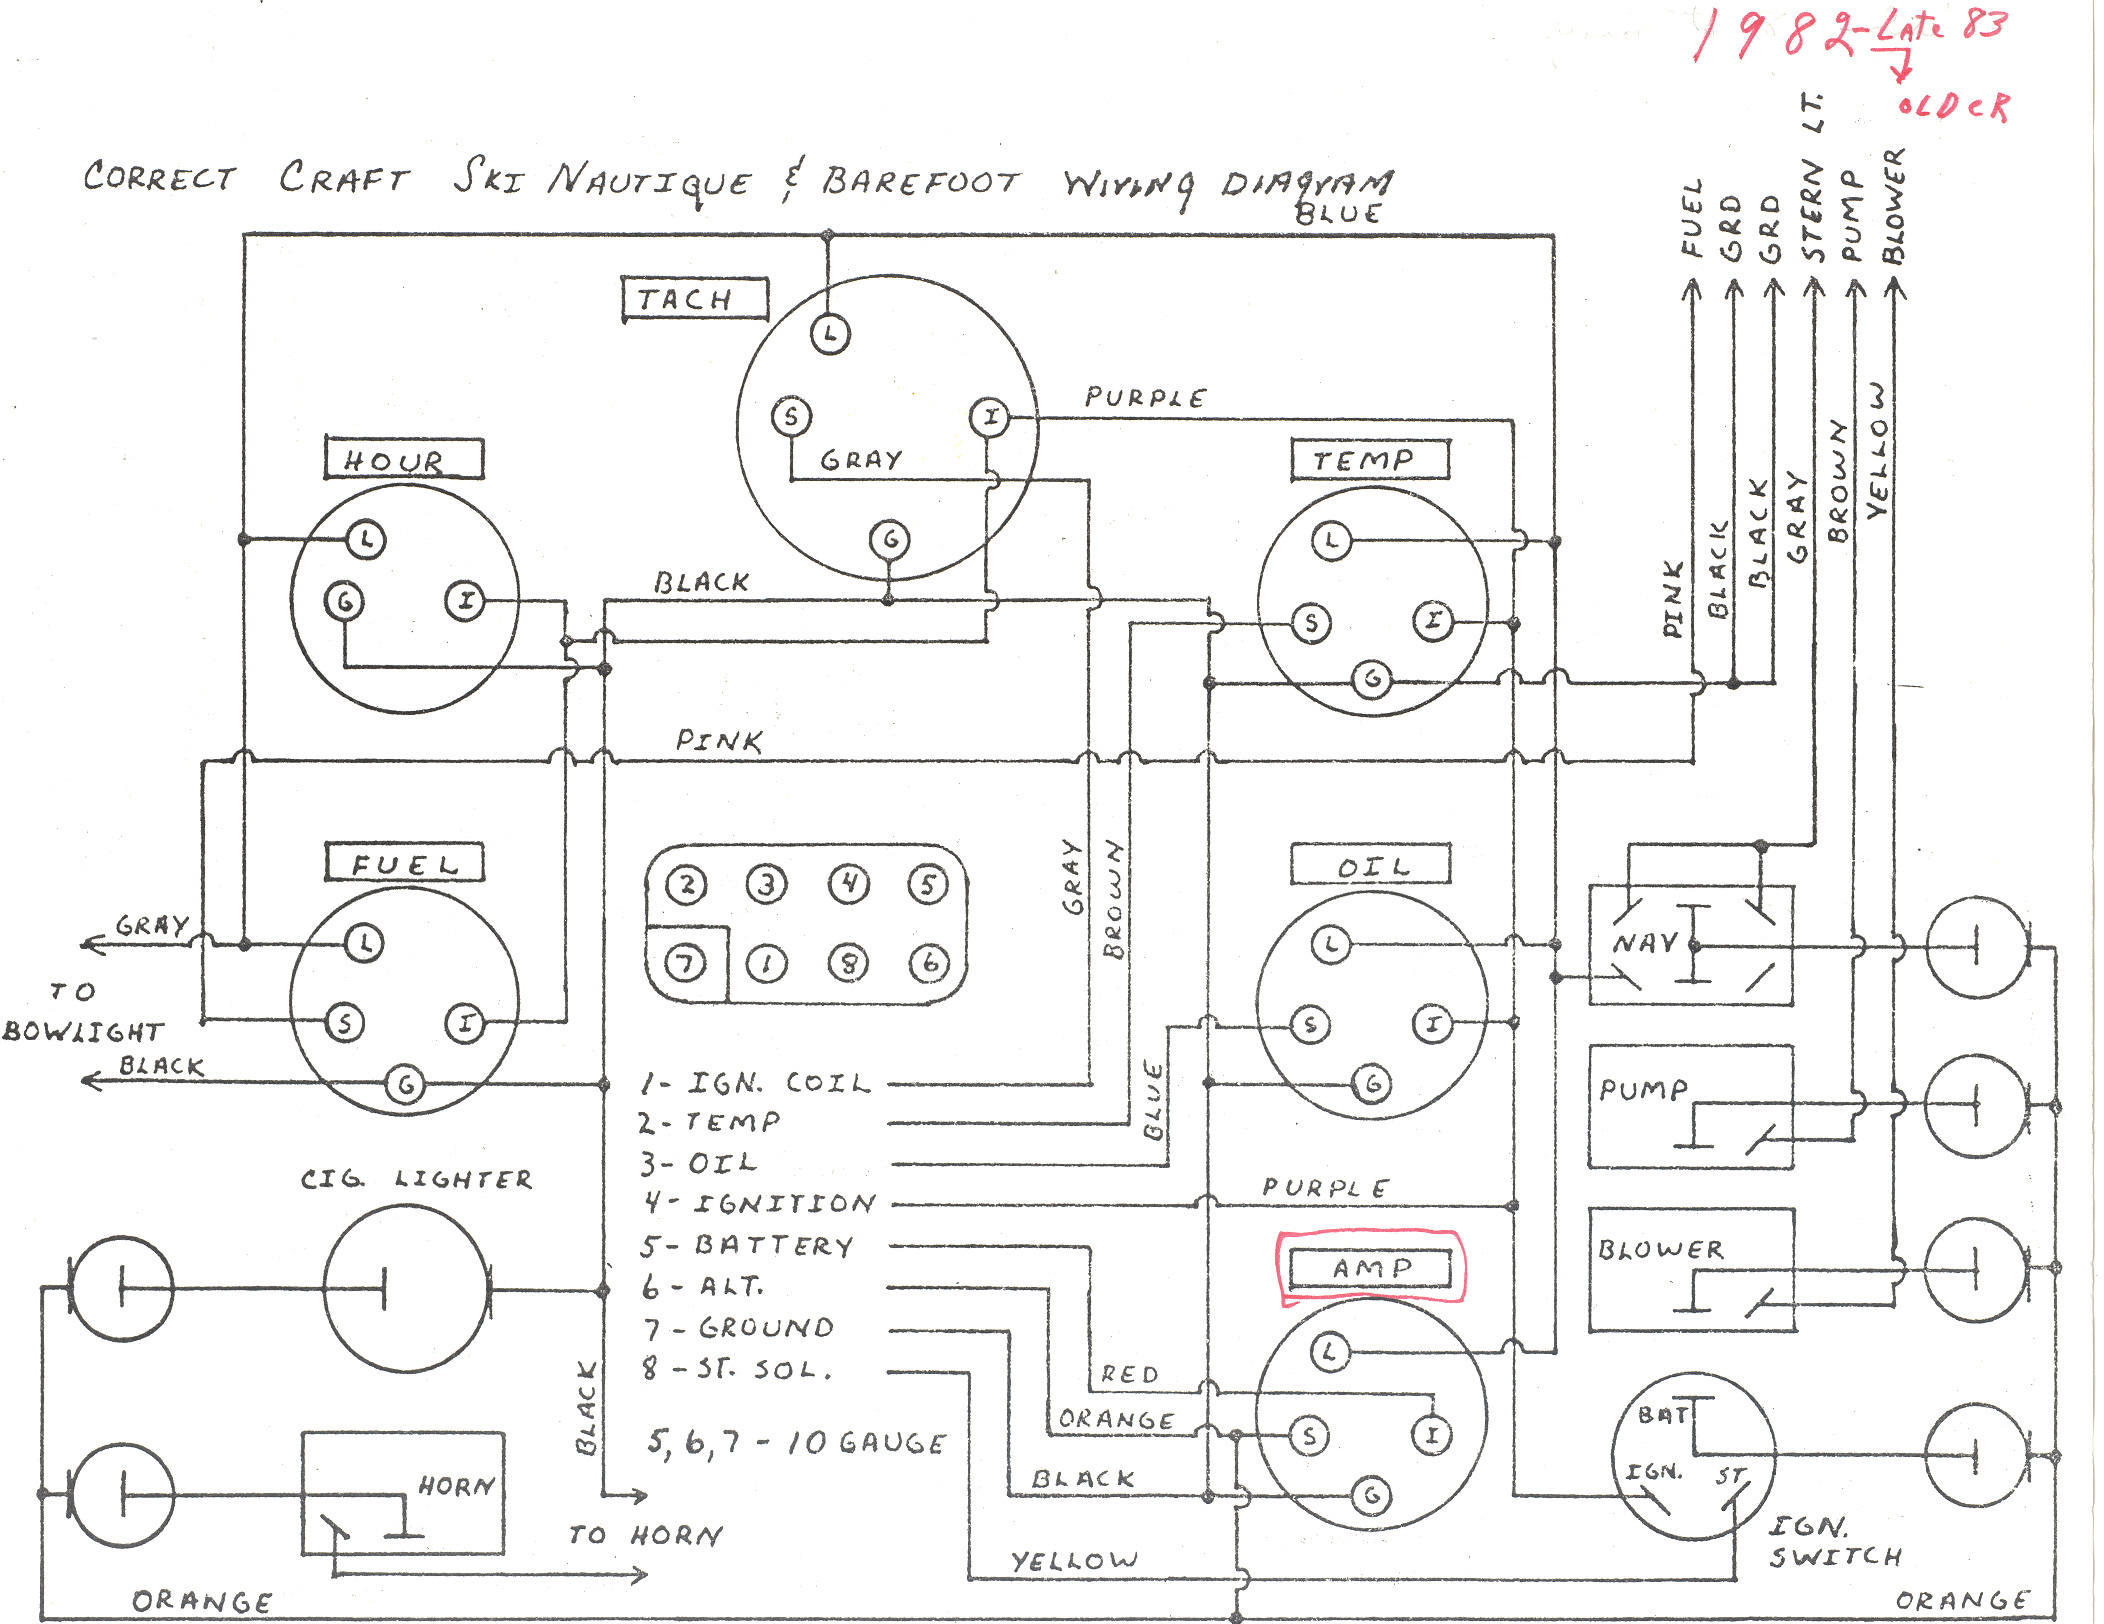 DIAGRAM] Chris Craft Wiring Diagram FULL Version HD Quality Wiring Diagram  - DIAGRAMDUCK.DIGITALIGHT.ITdigit